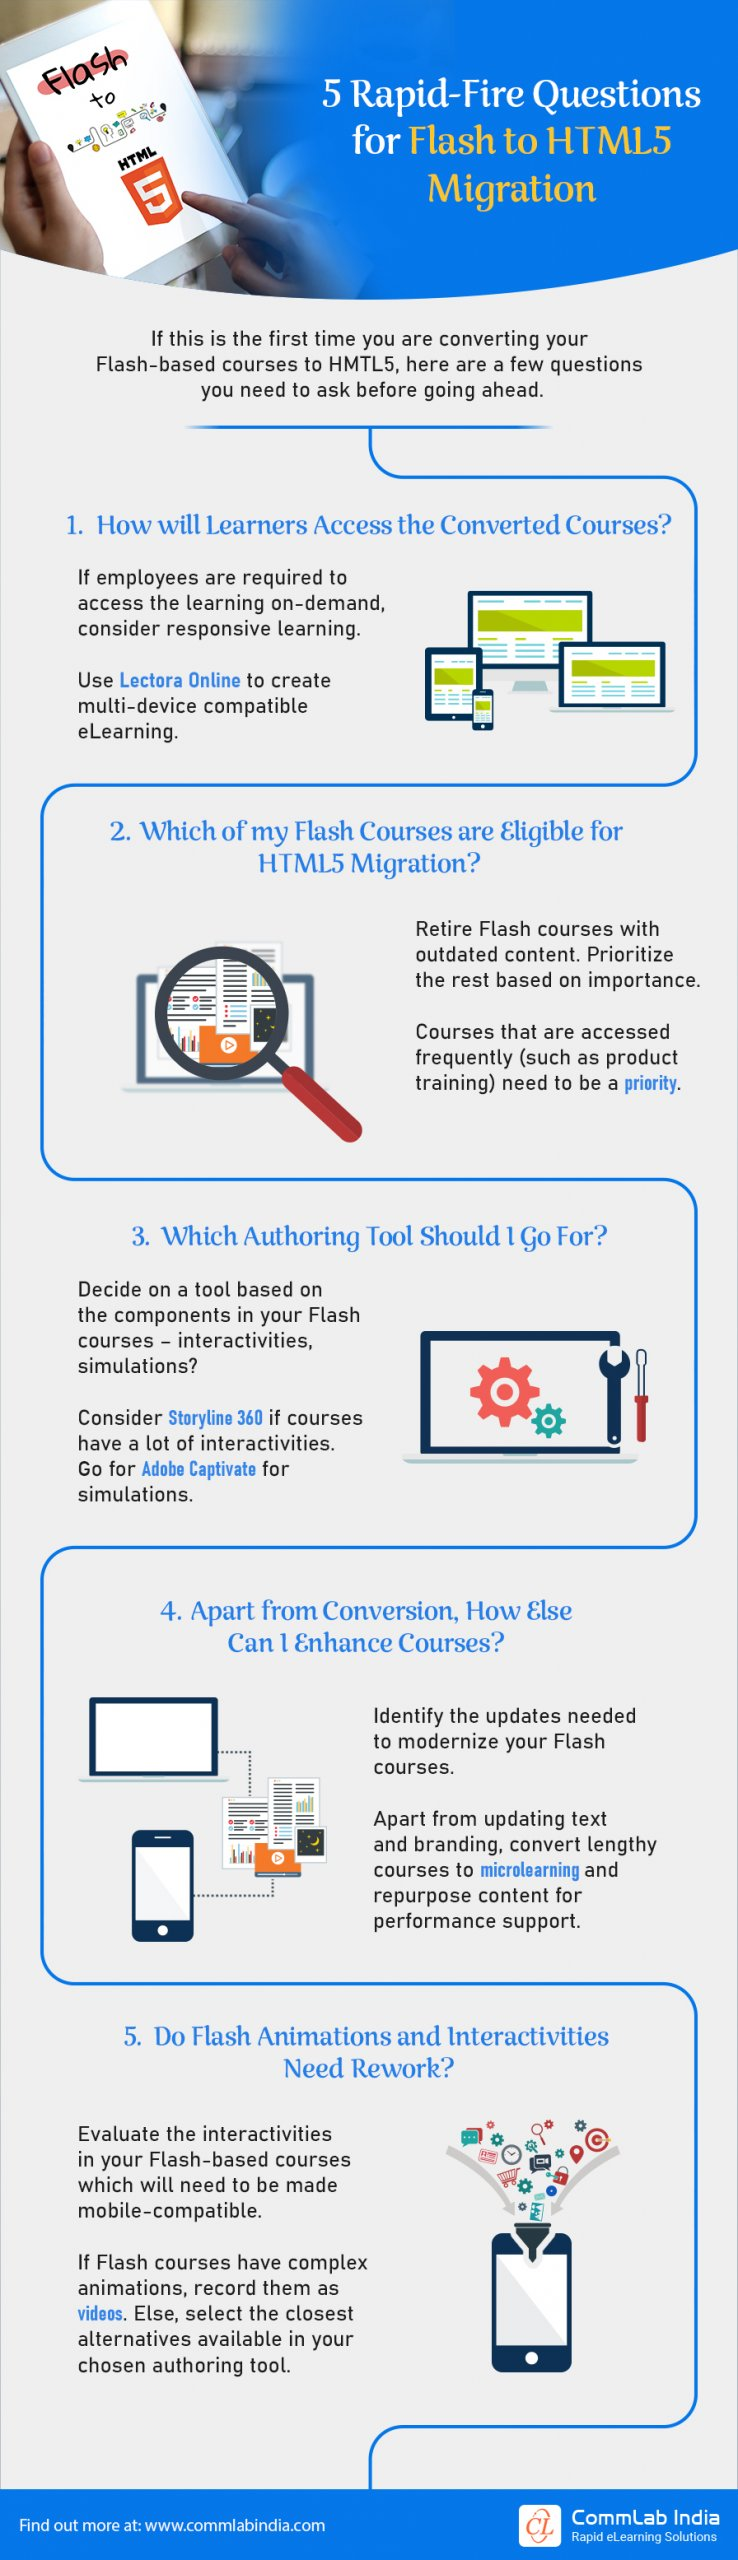 5 Rapid Fire Questions for Flash to HTML5 Migration [Infographic]